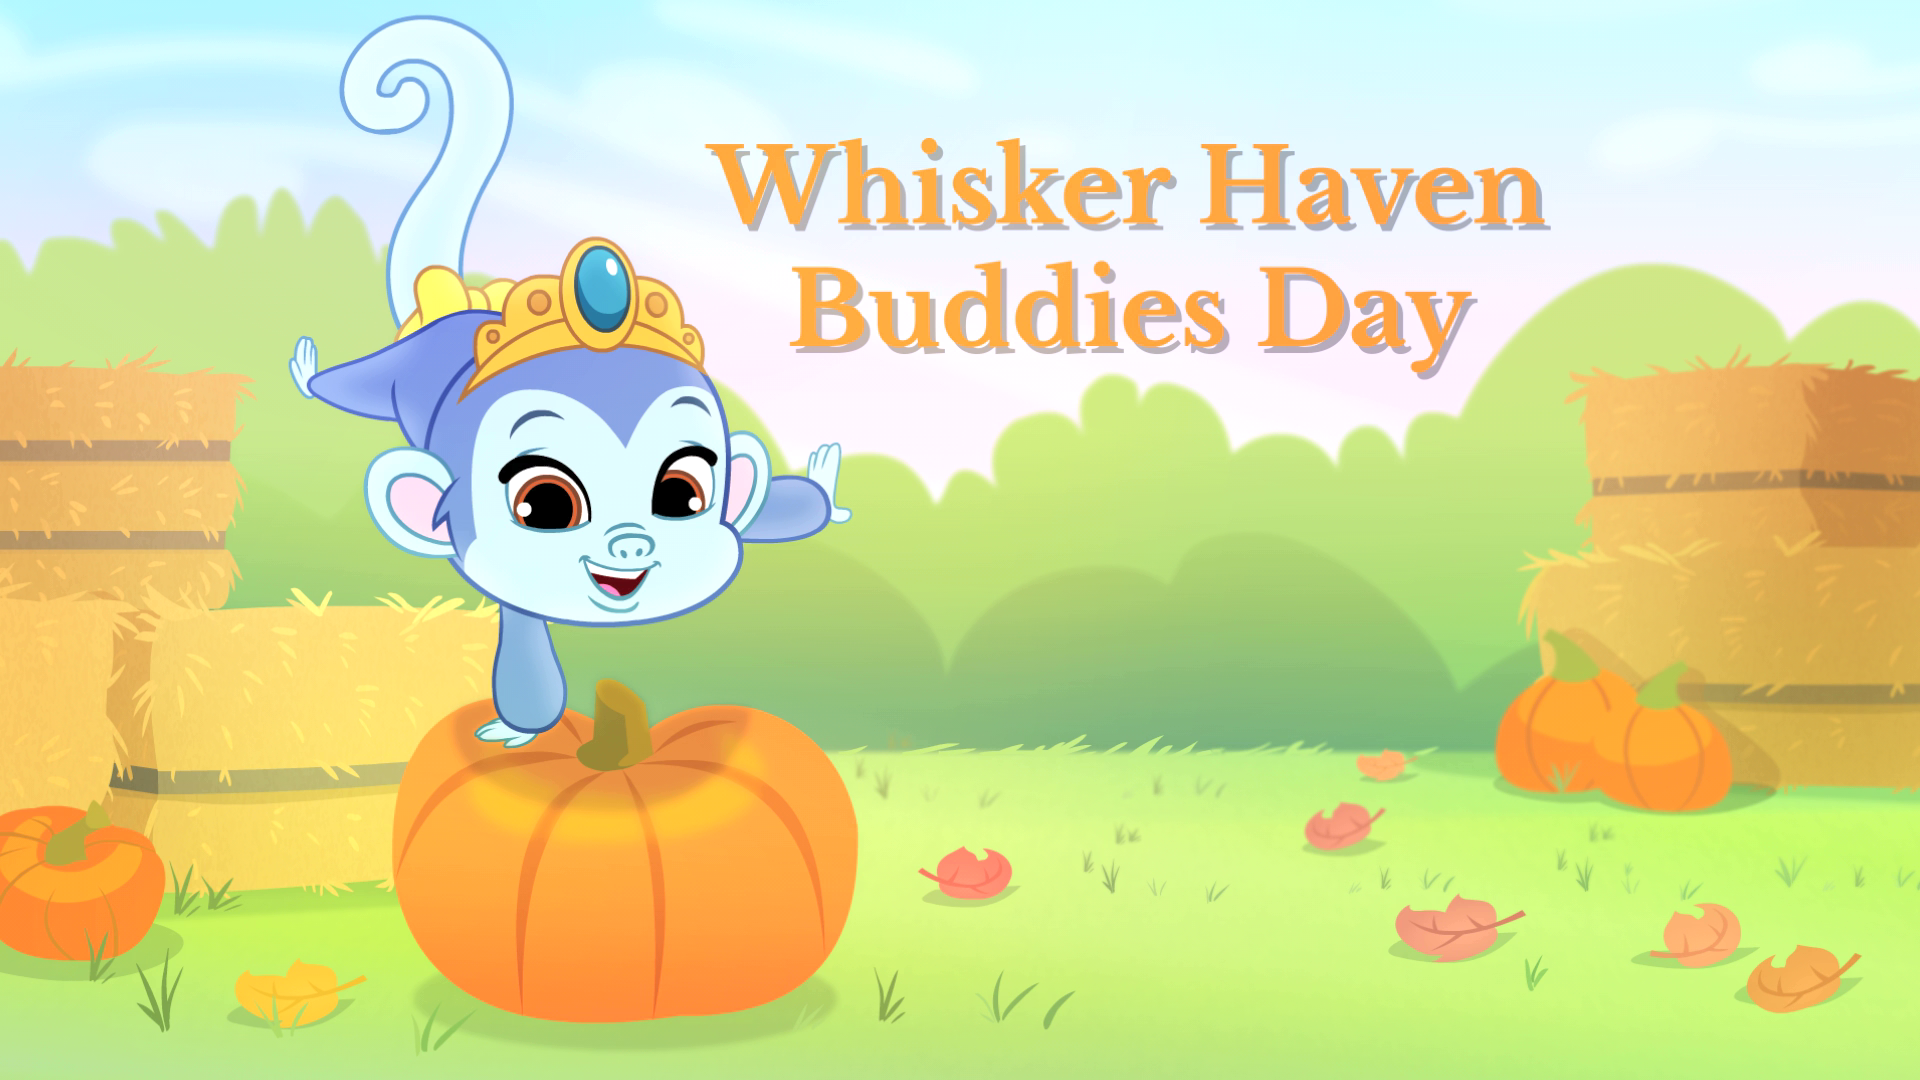 Whisker Haven Buddies Day | Ep. 205 | Whisker Haven Tales With The Palace Pets